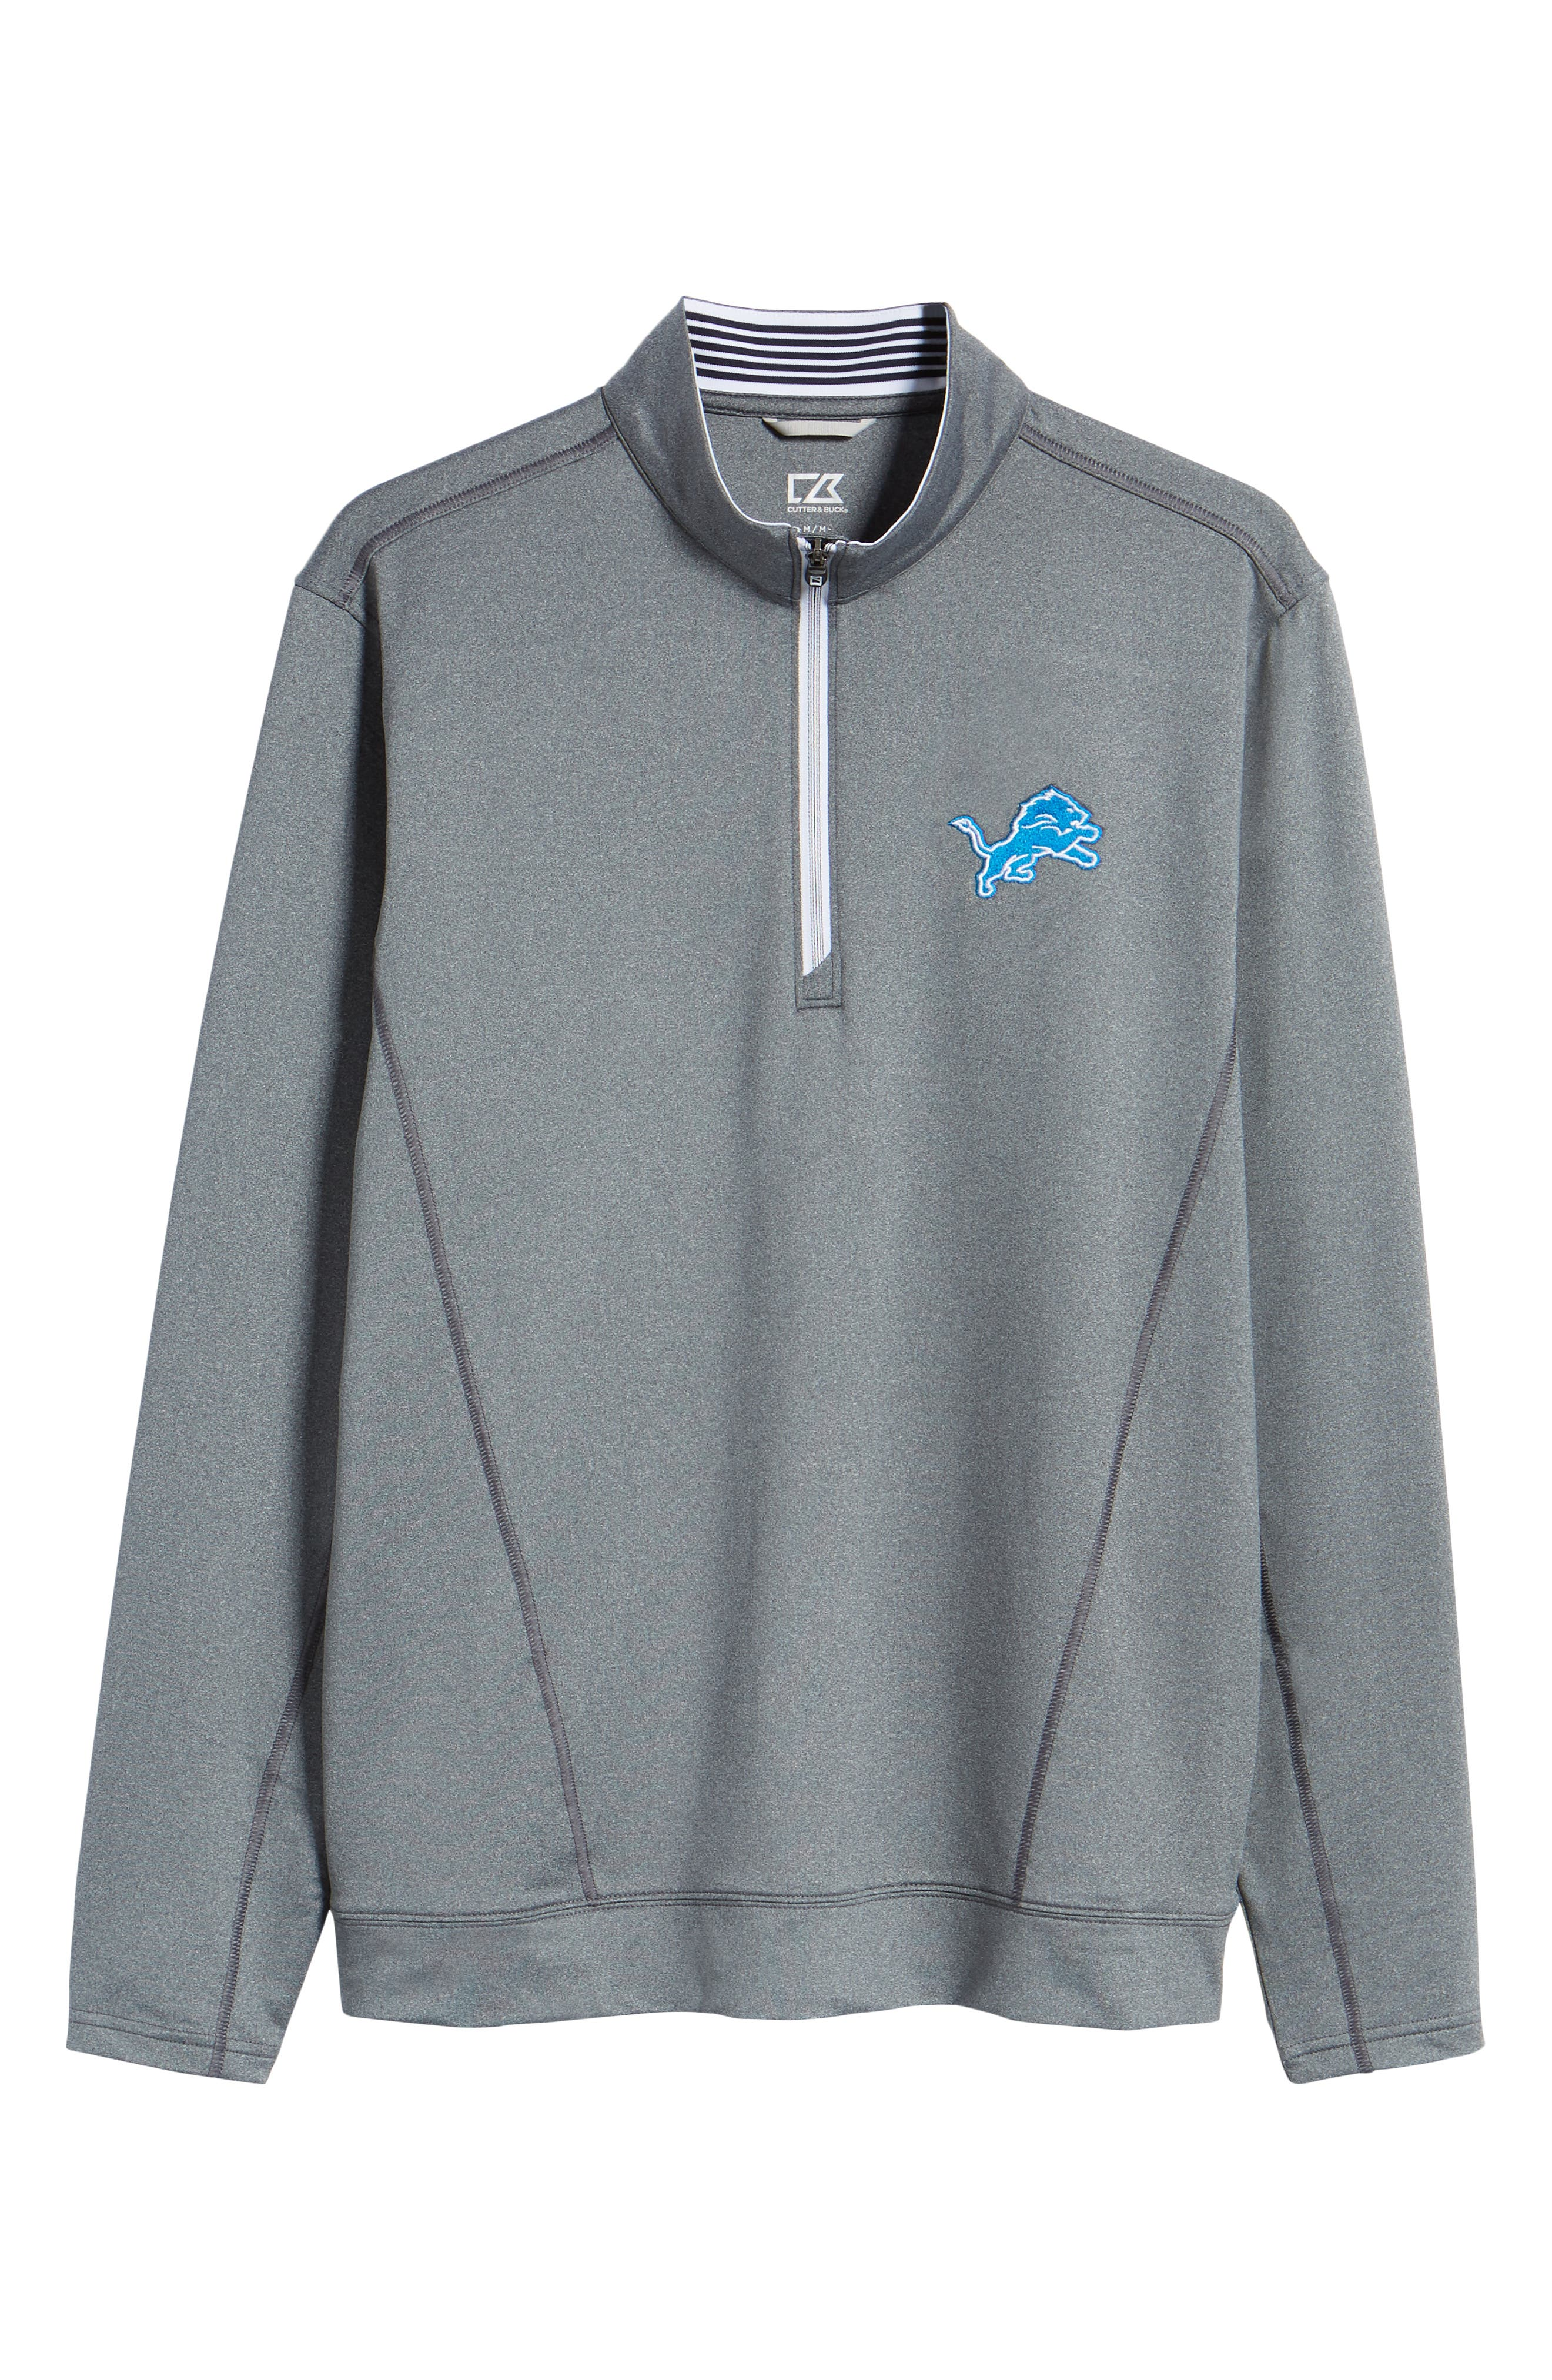 Endurance Detroit Lions Regular Fit Pullover,                             Alternate thumbnail 6, color,                             CHARCOAL HEATHER